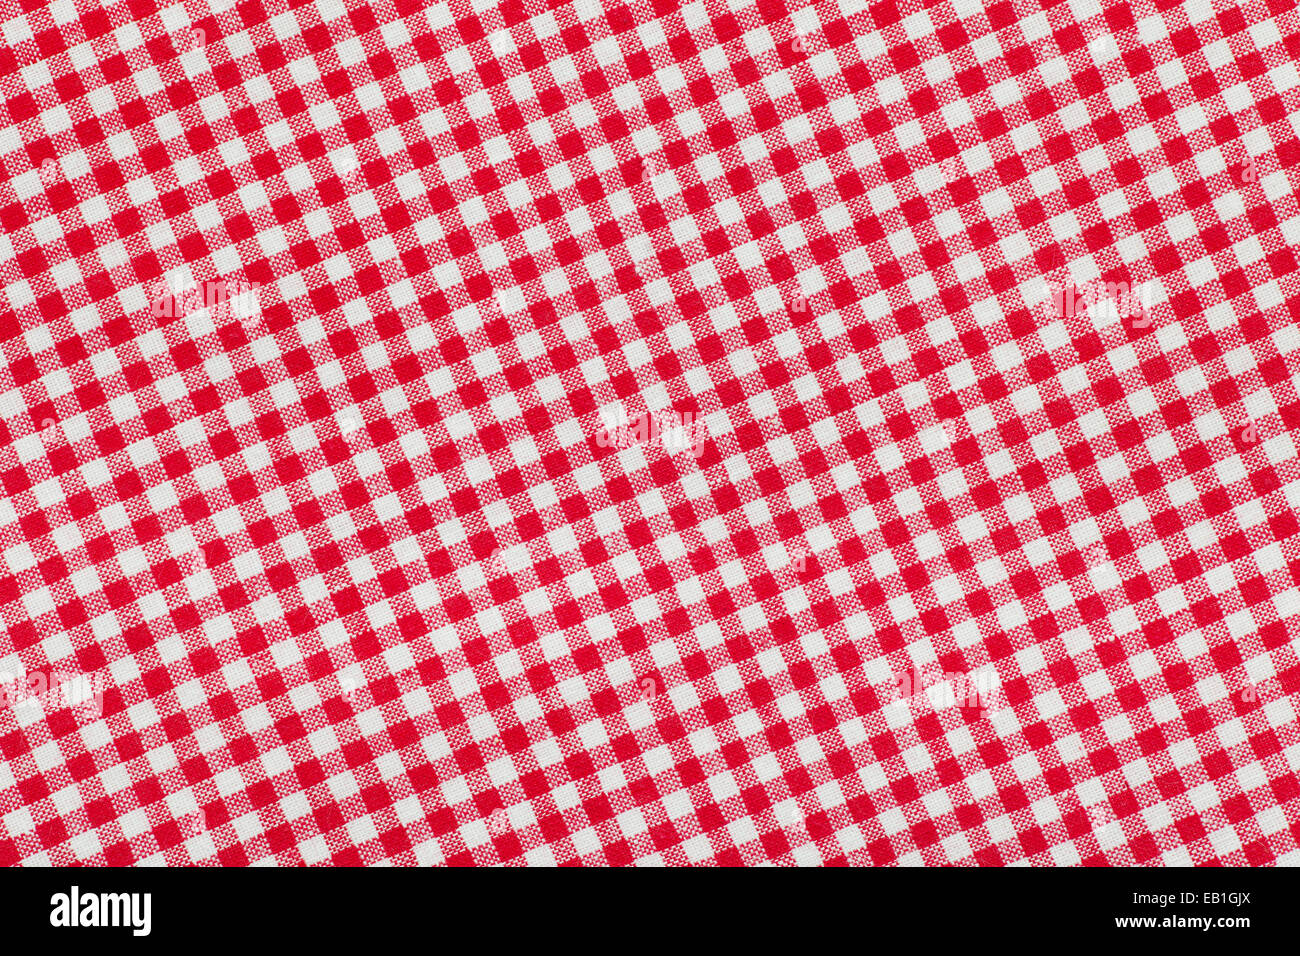 Red And White Checkered Picnic Tablecloth Background, Texture